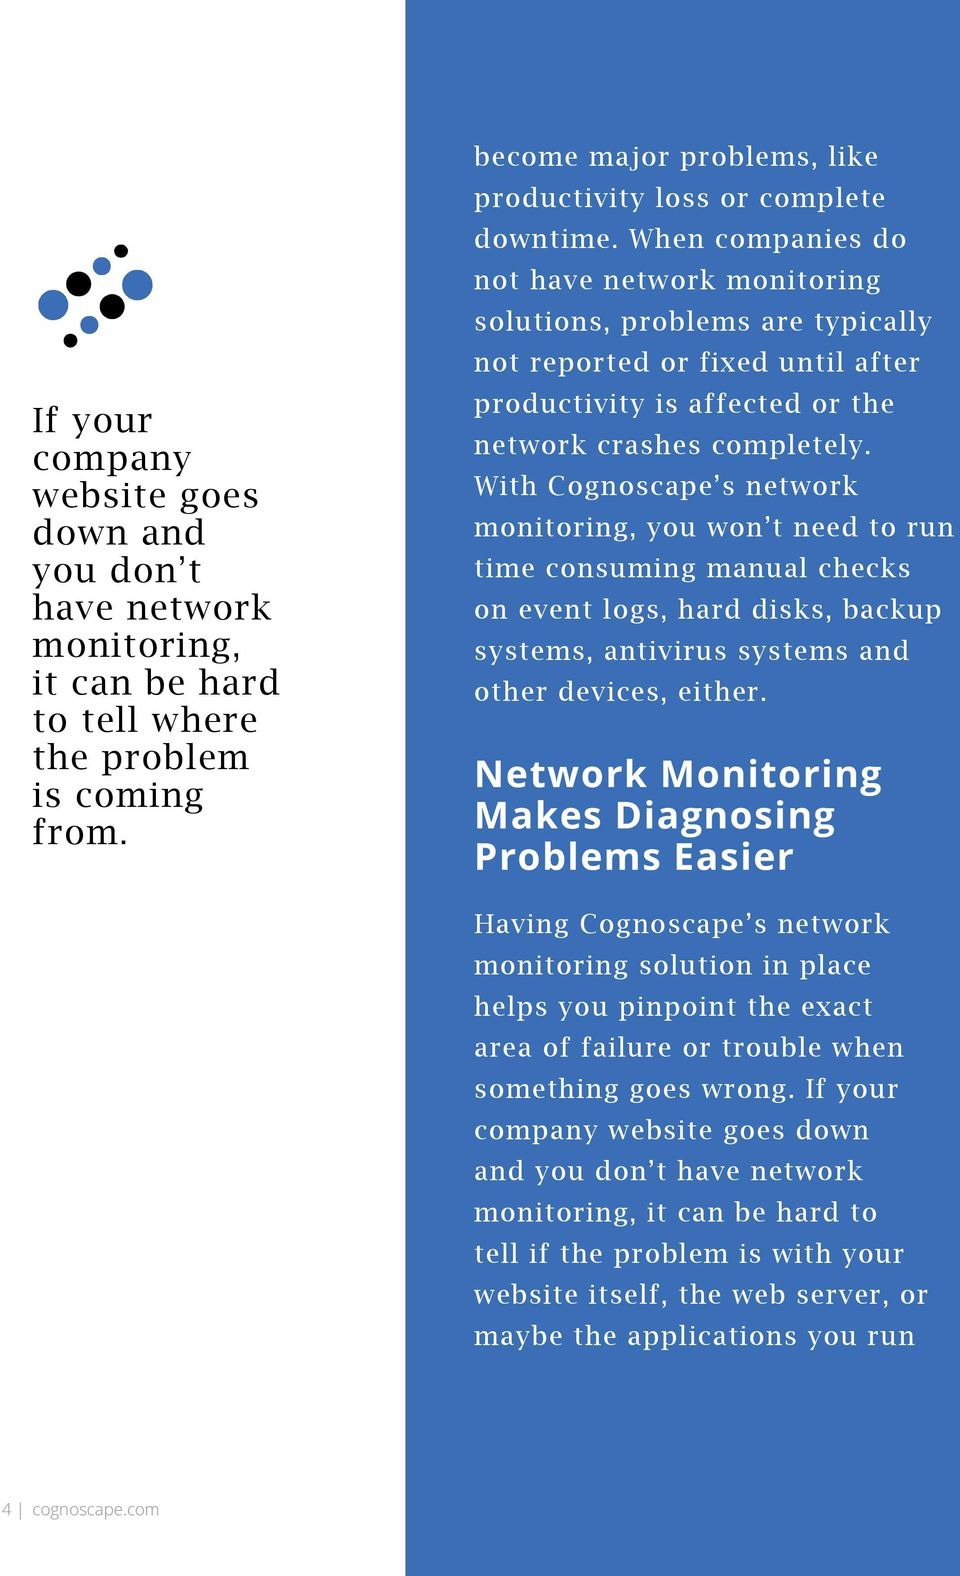 With Cognoscape s network monitoring, you won t need to run time consuming manual checks on event logs, hard disks, backup systems, antivirus systems and other devices, either.